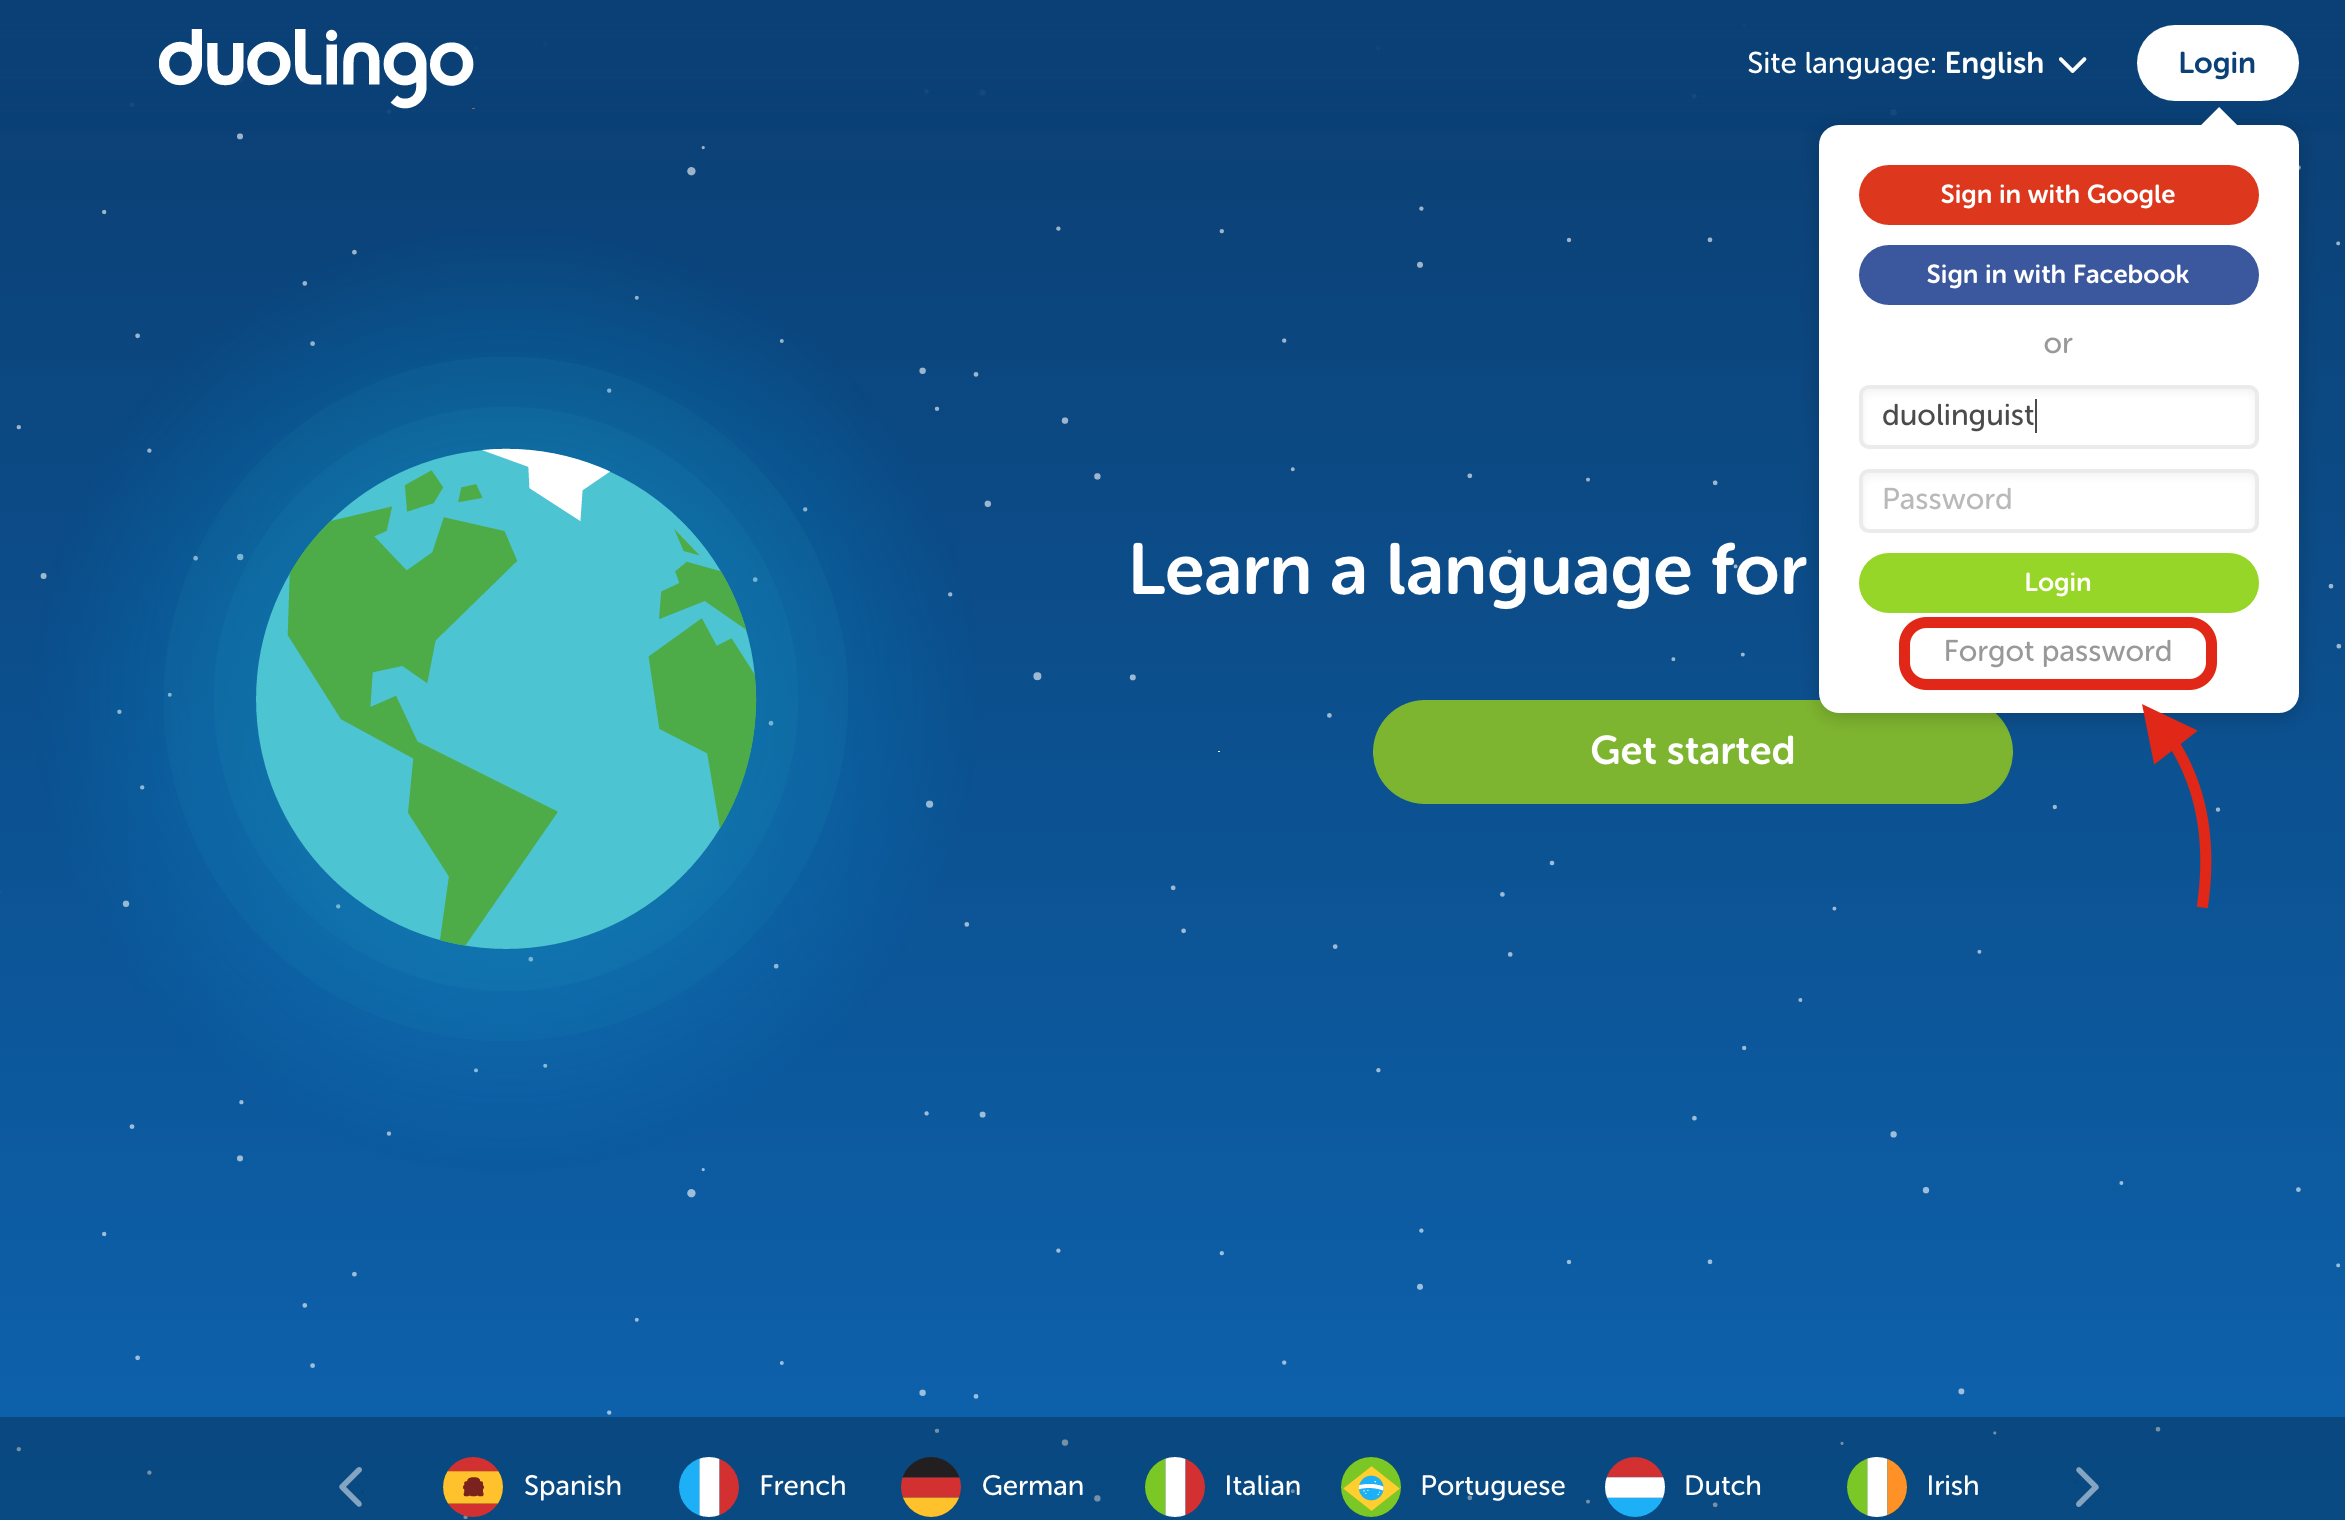 I can't access my account or reset my password! – Duolingo